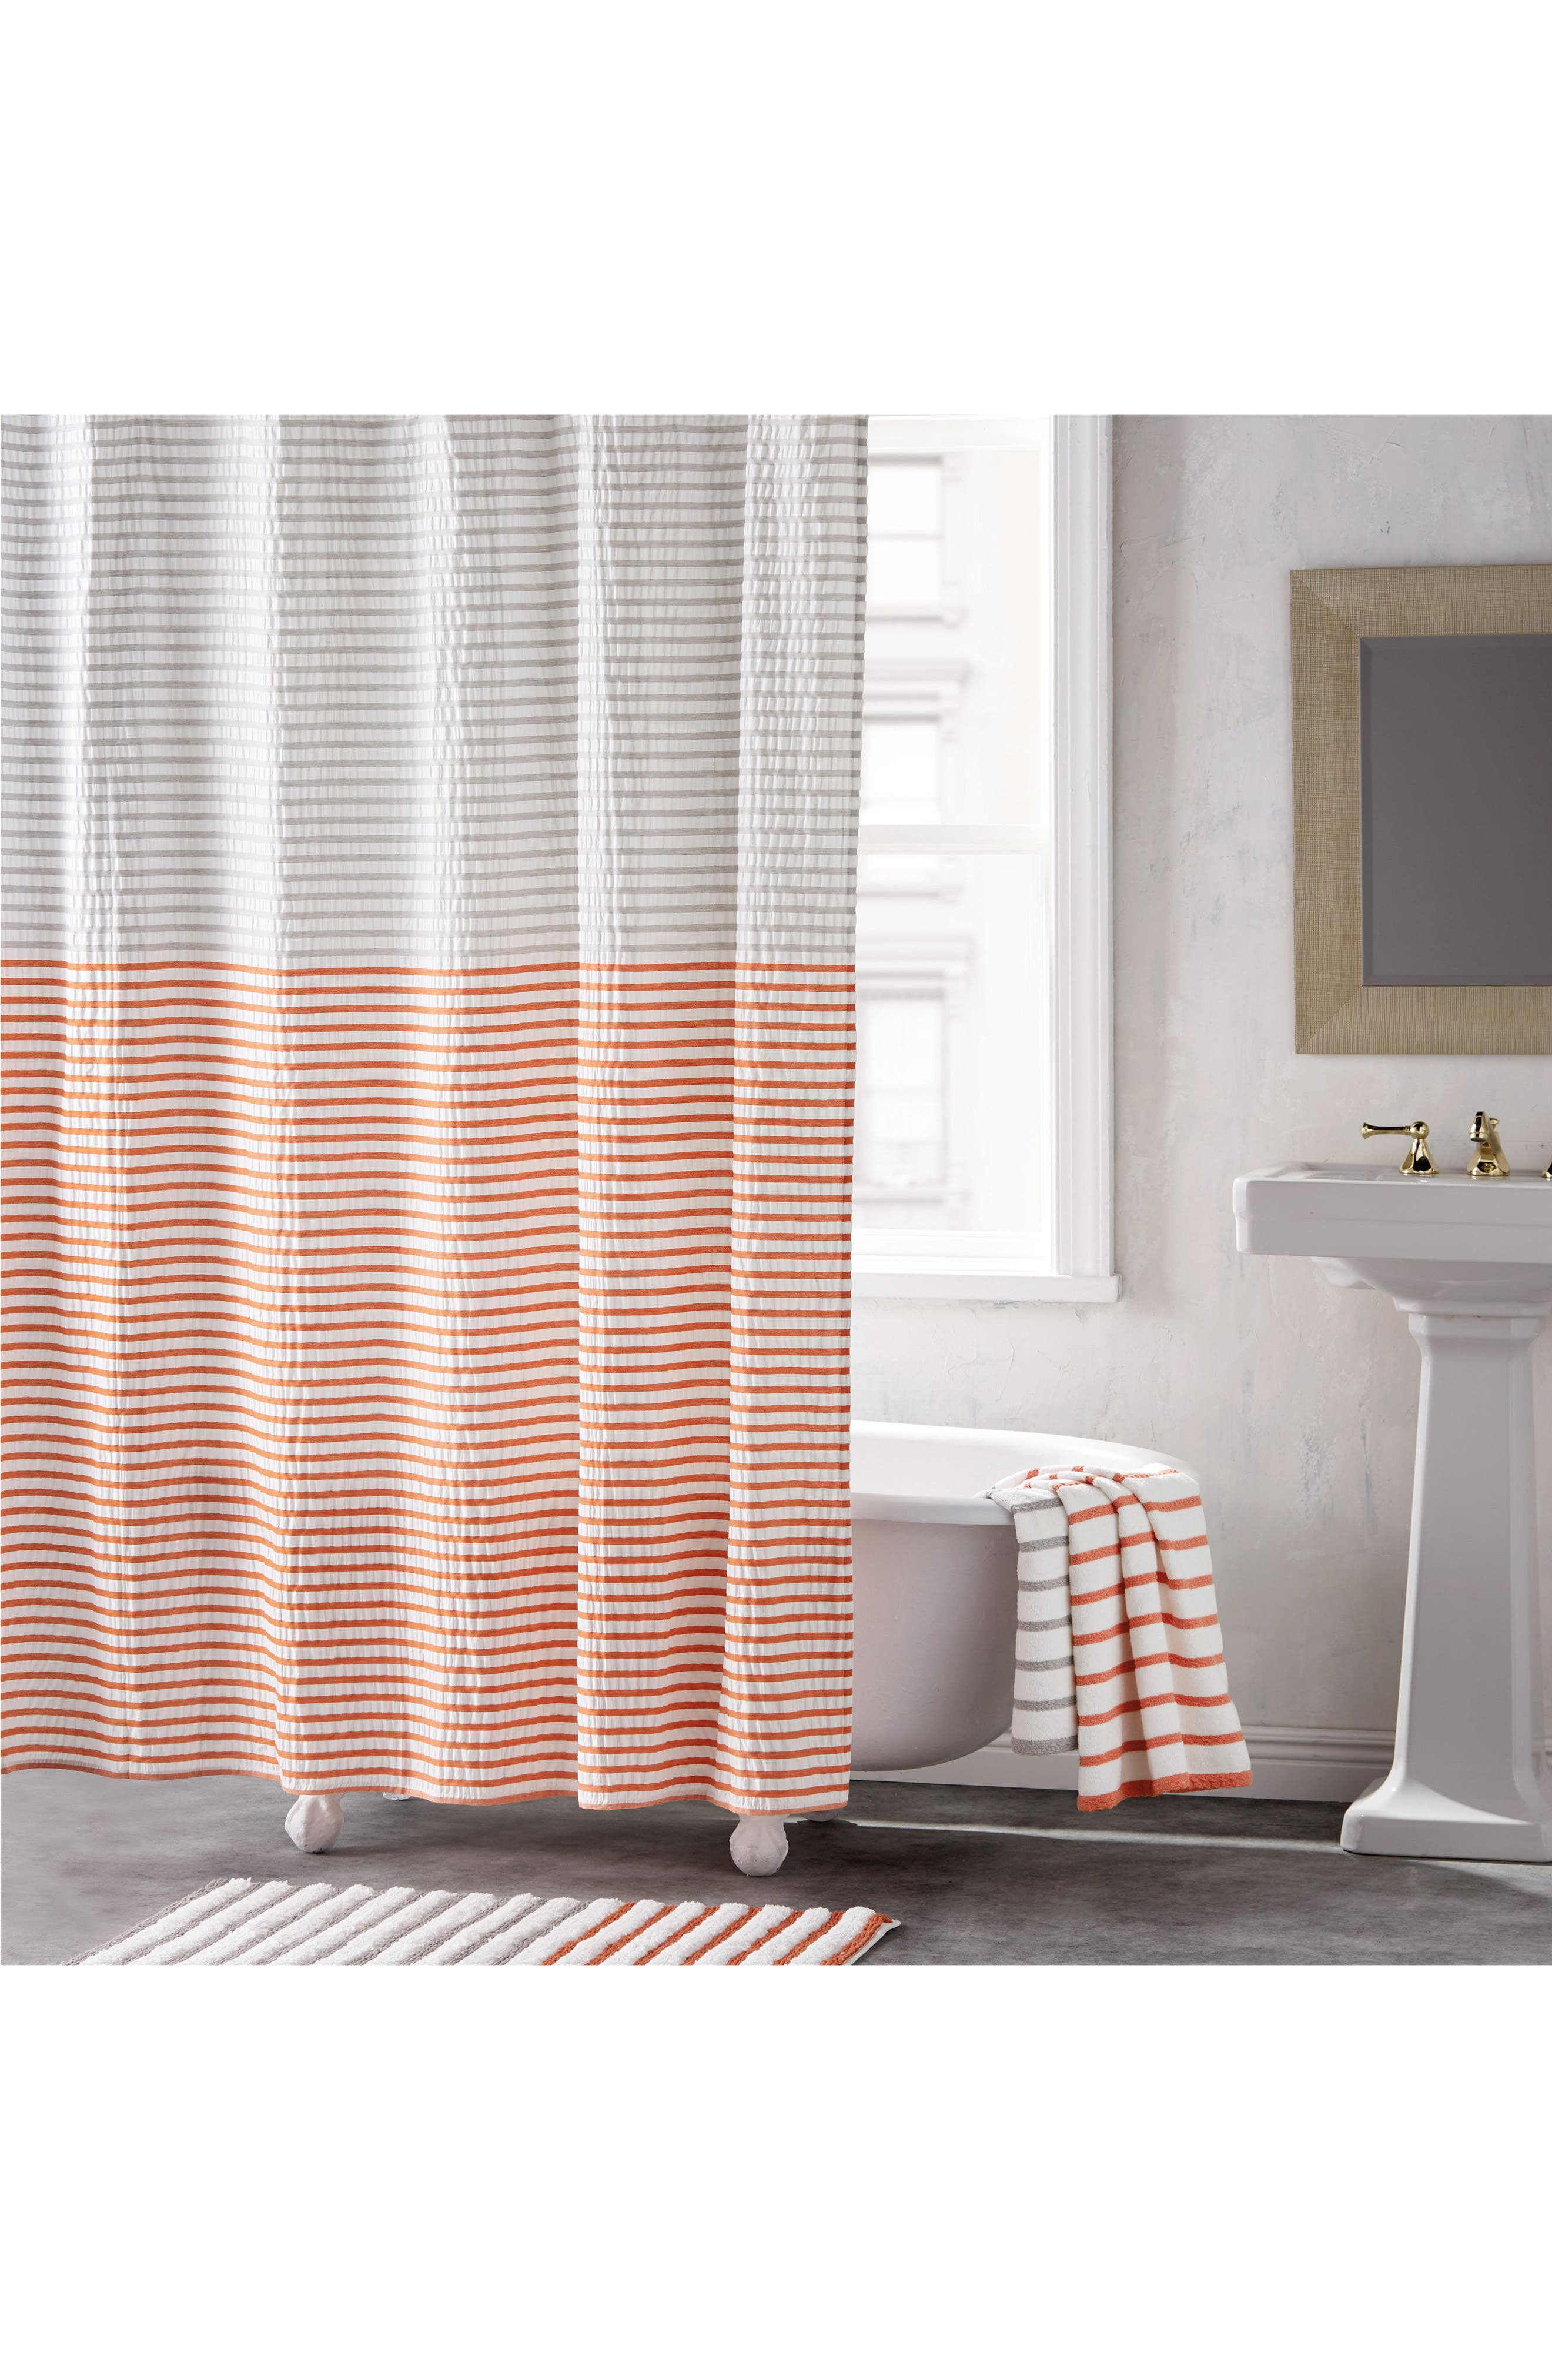 Shower Curtains Nordstrom - Brown and white striped shower curtain